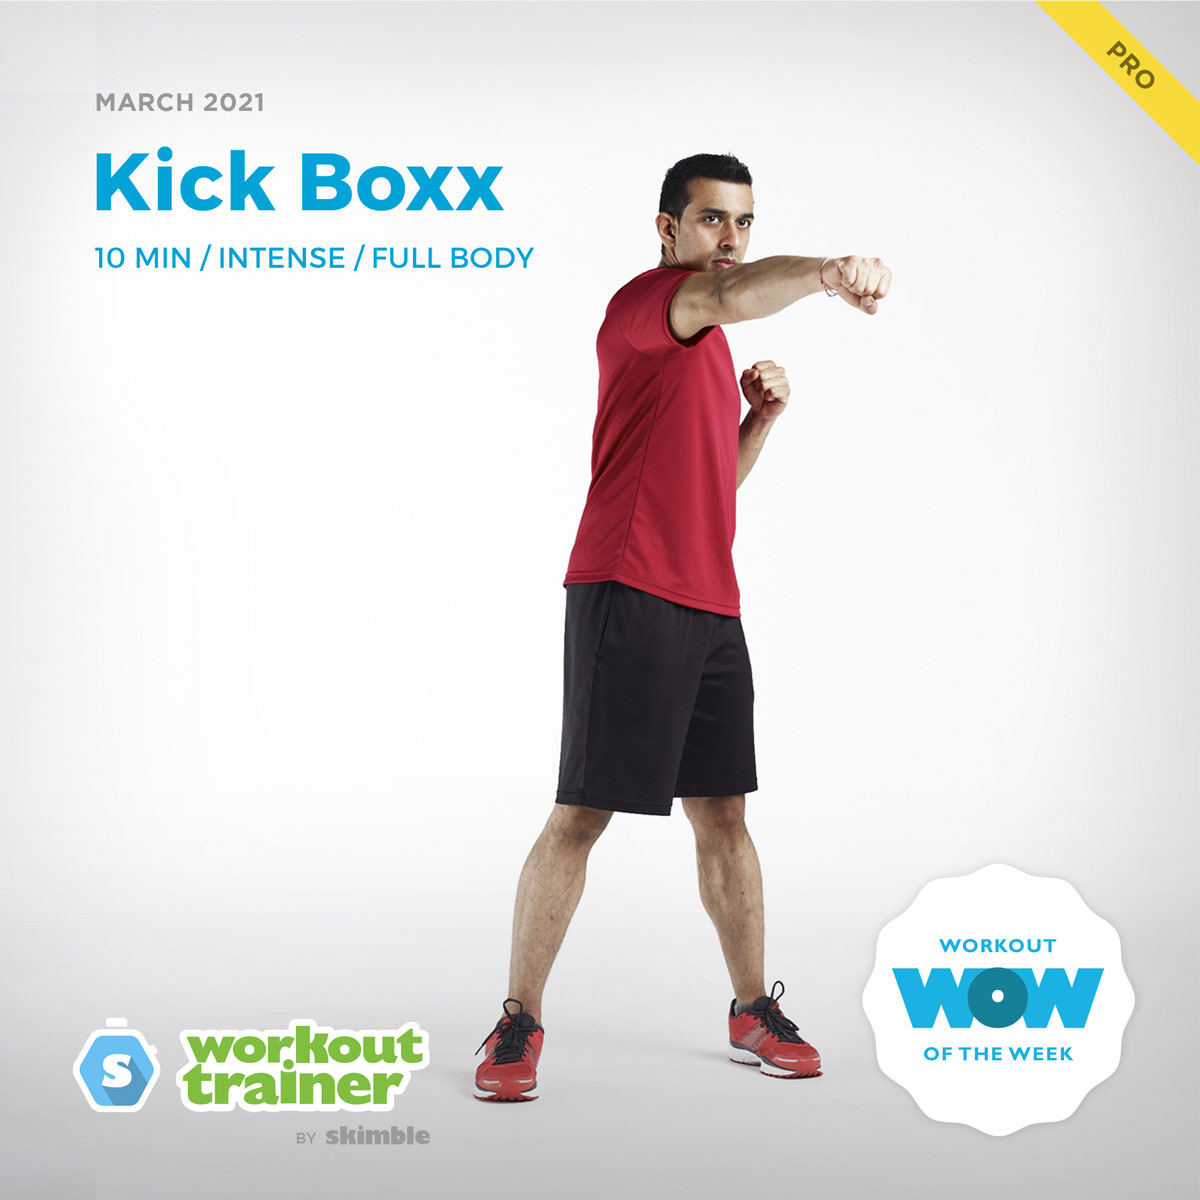 Male Fitness Instructor doing kickboxing cardio workout with Right Jabs